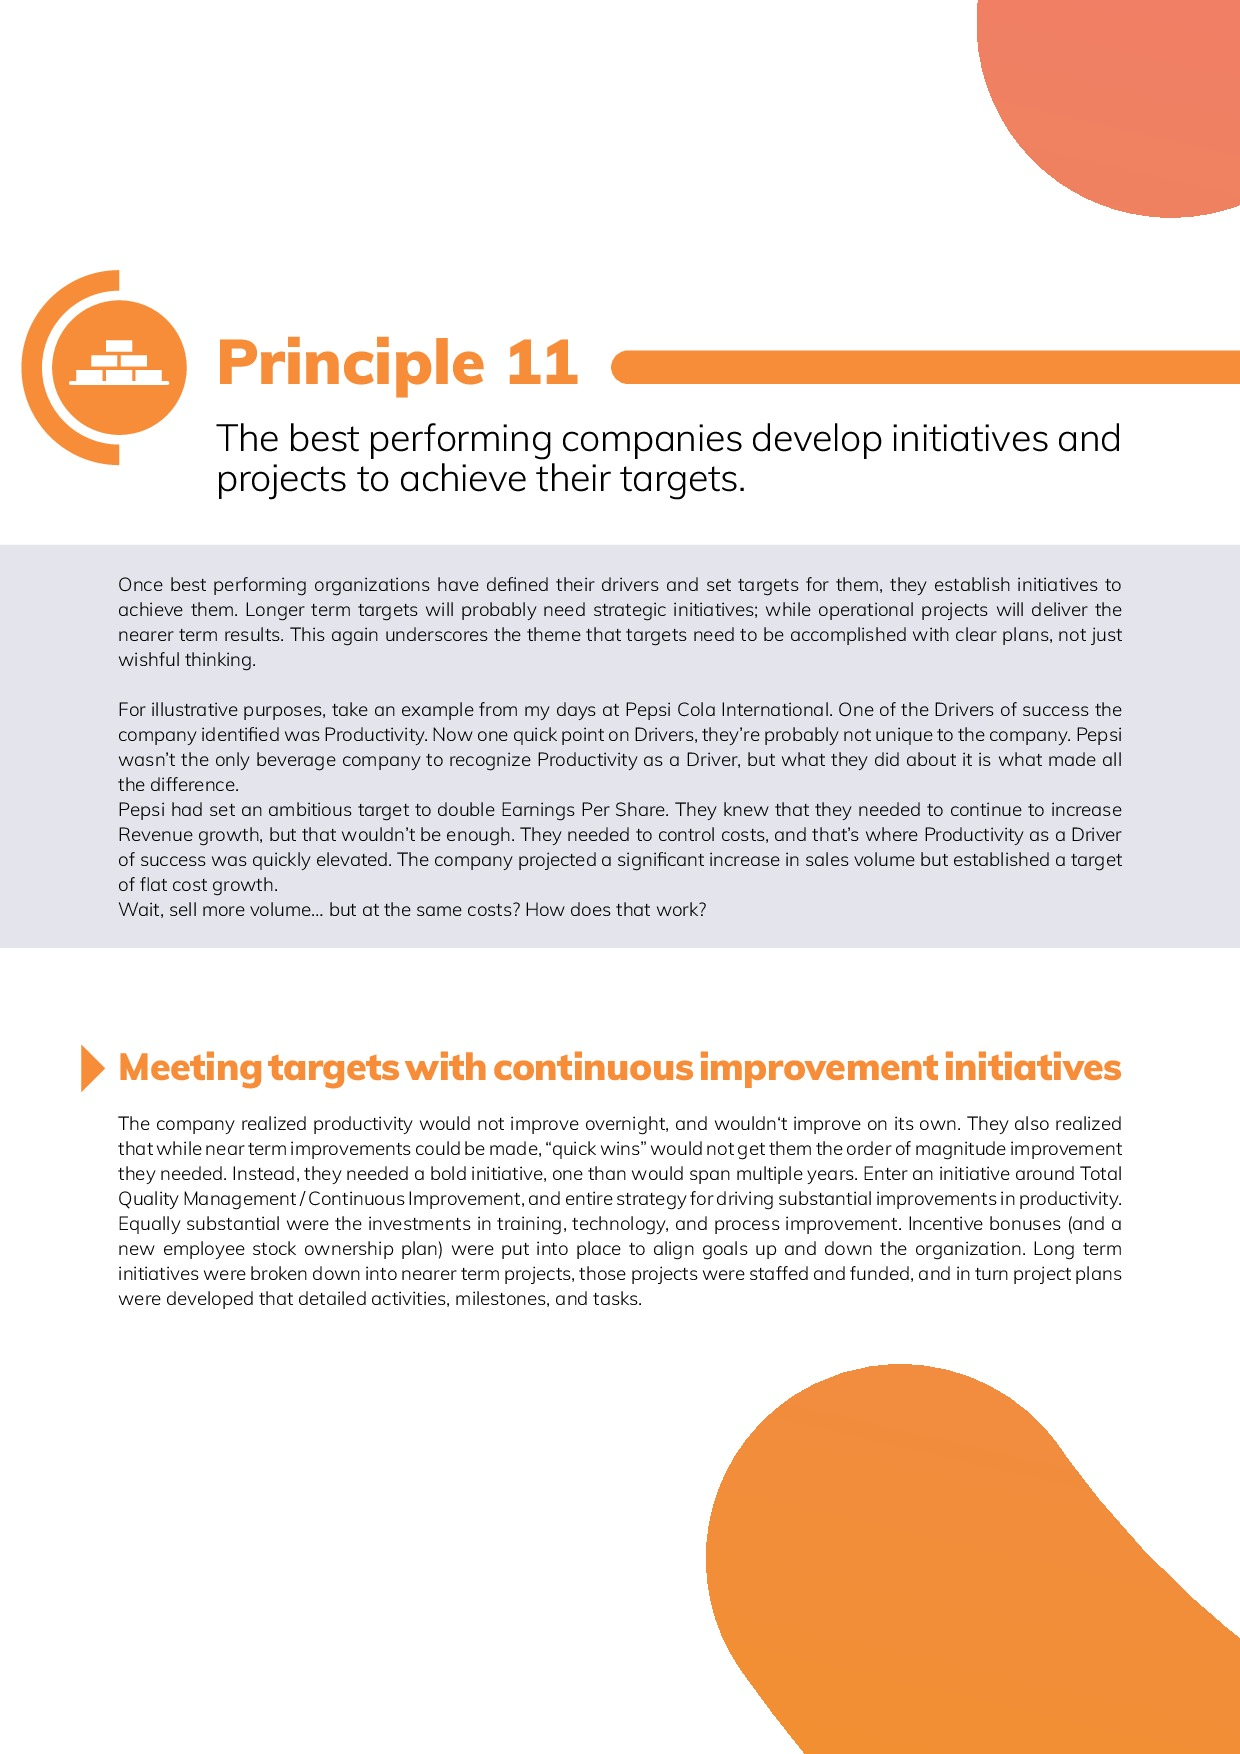 12 Best Practices in FP&A | Page 24